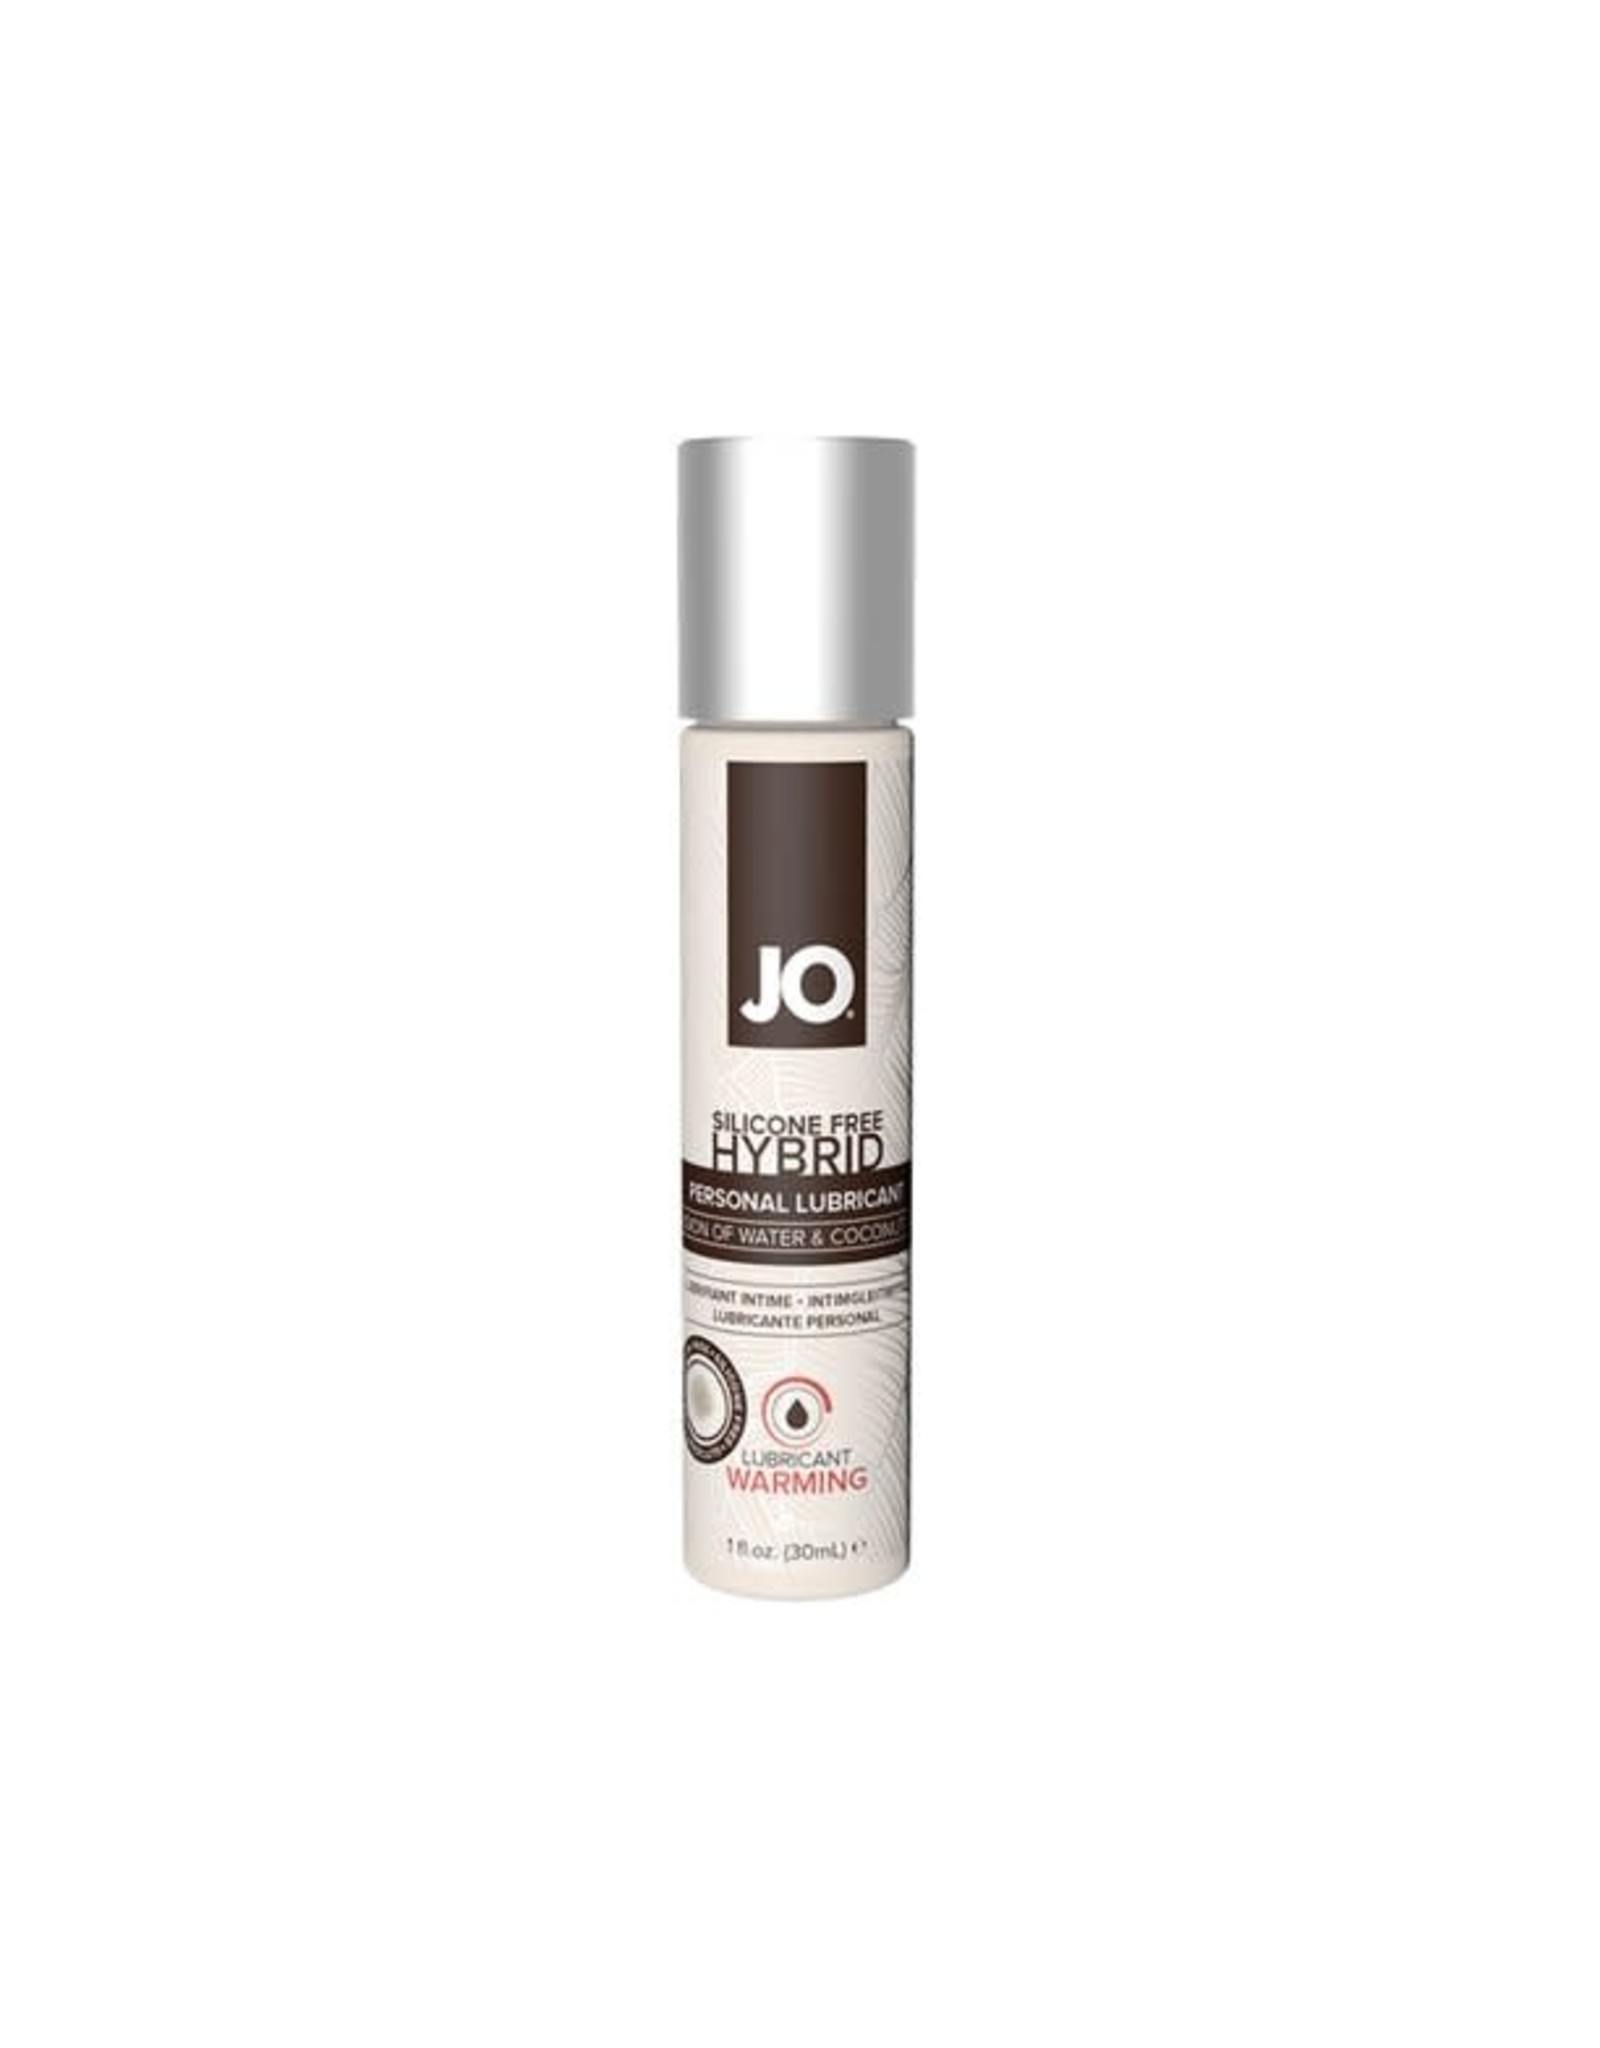 JO Coconut Oil Hybrid Warming